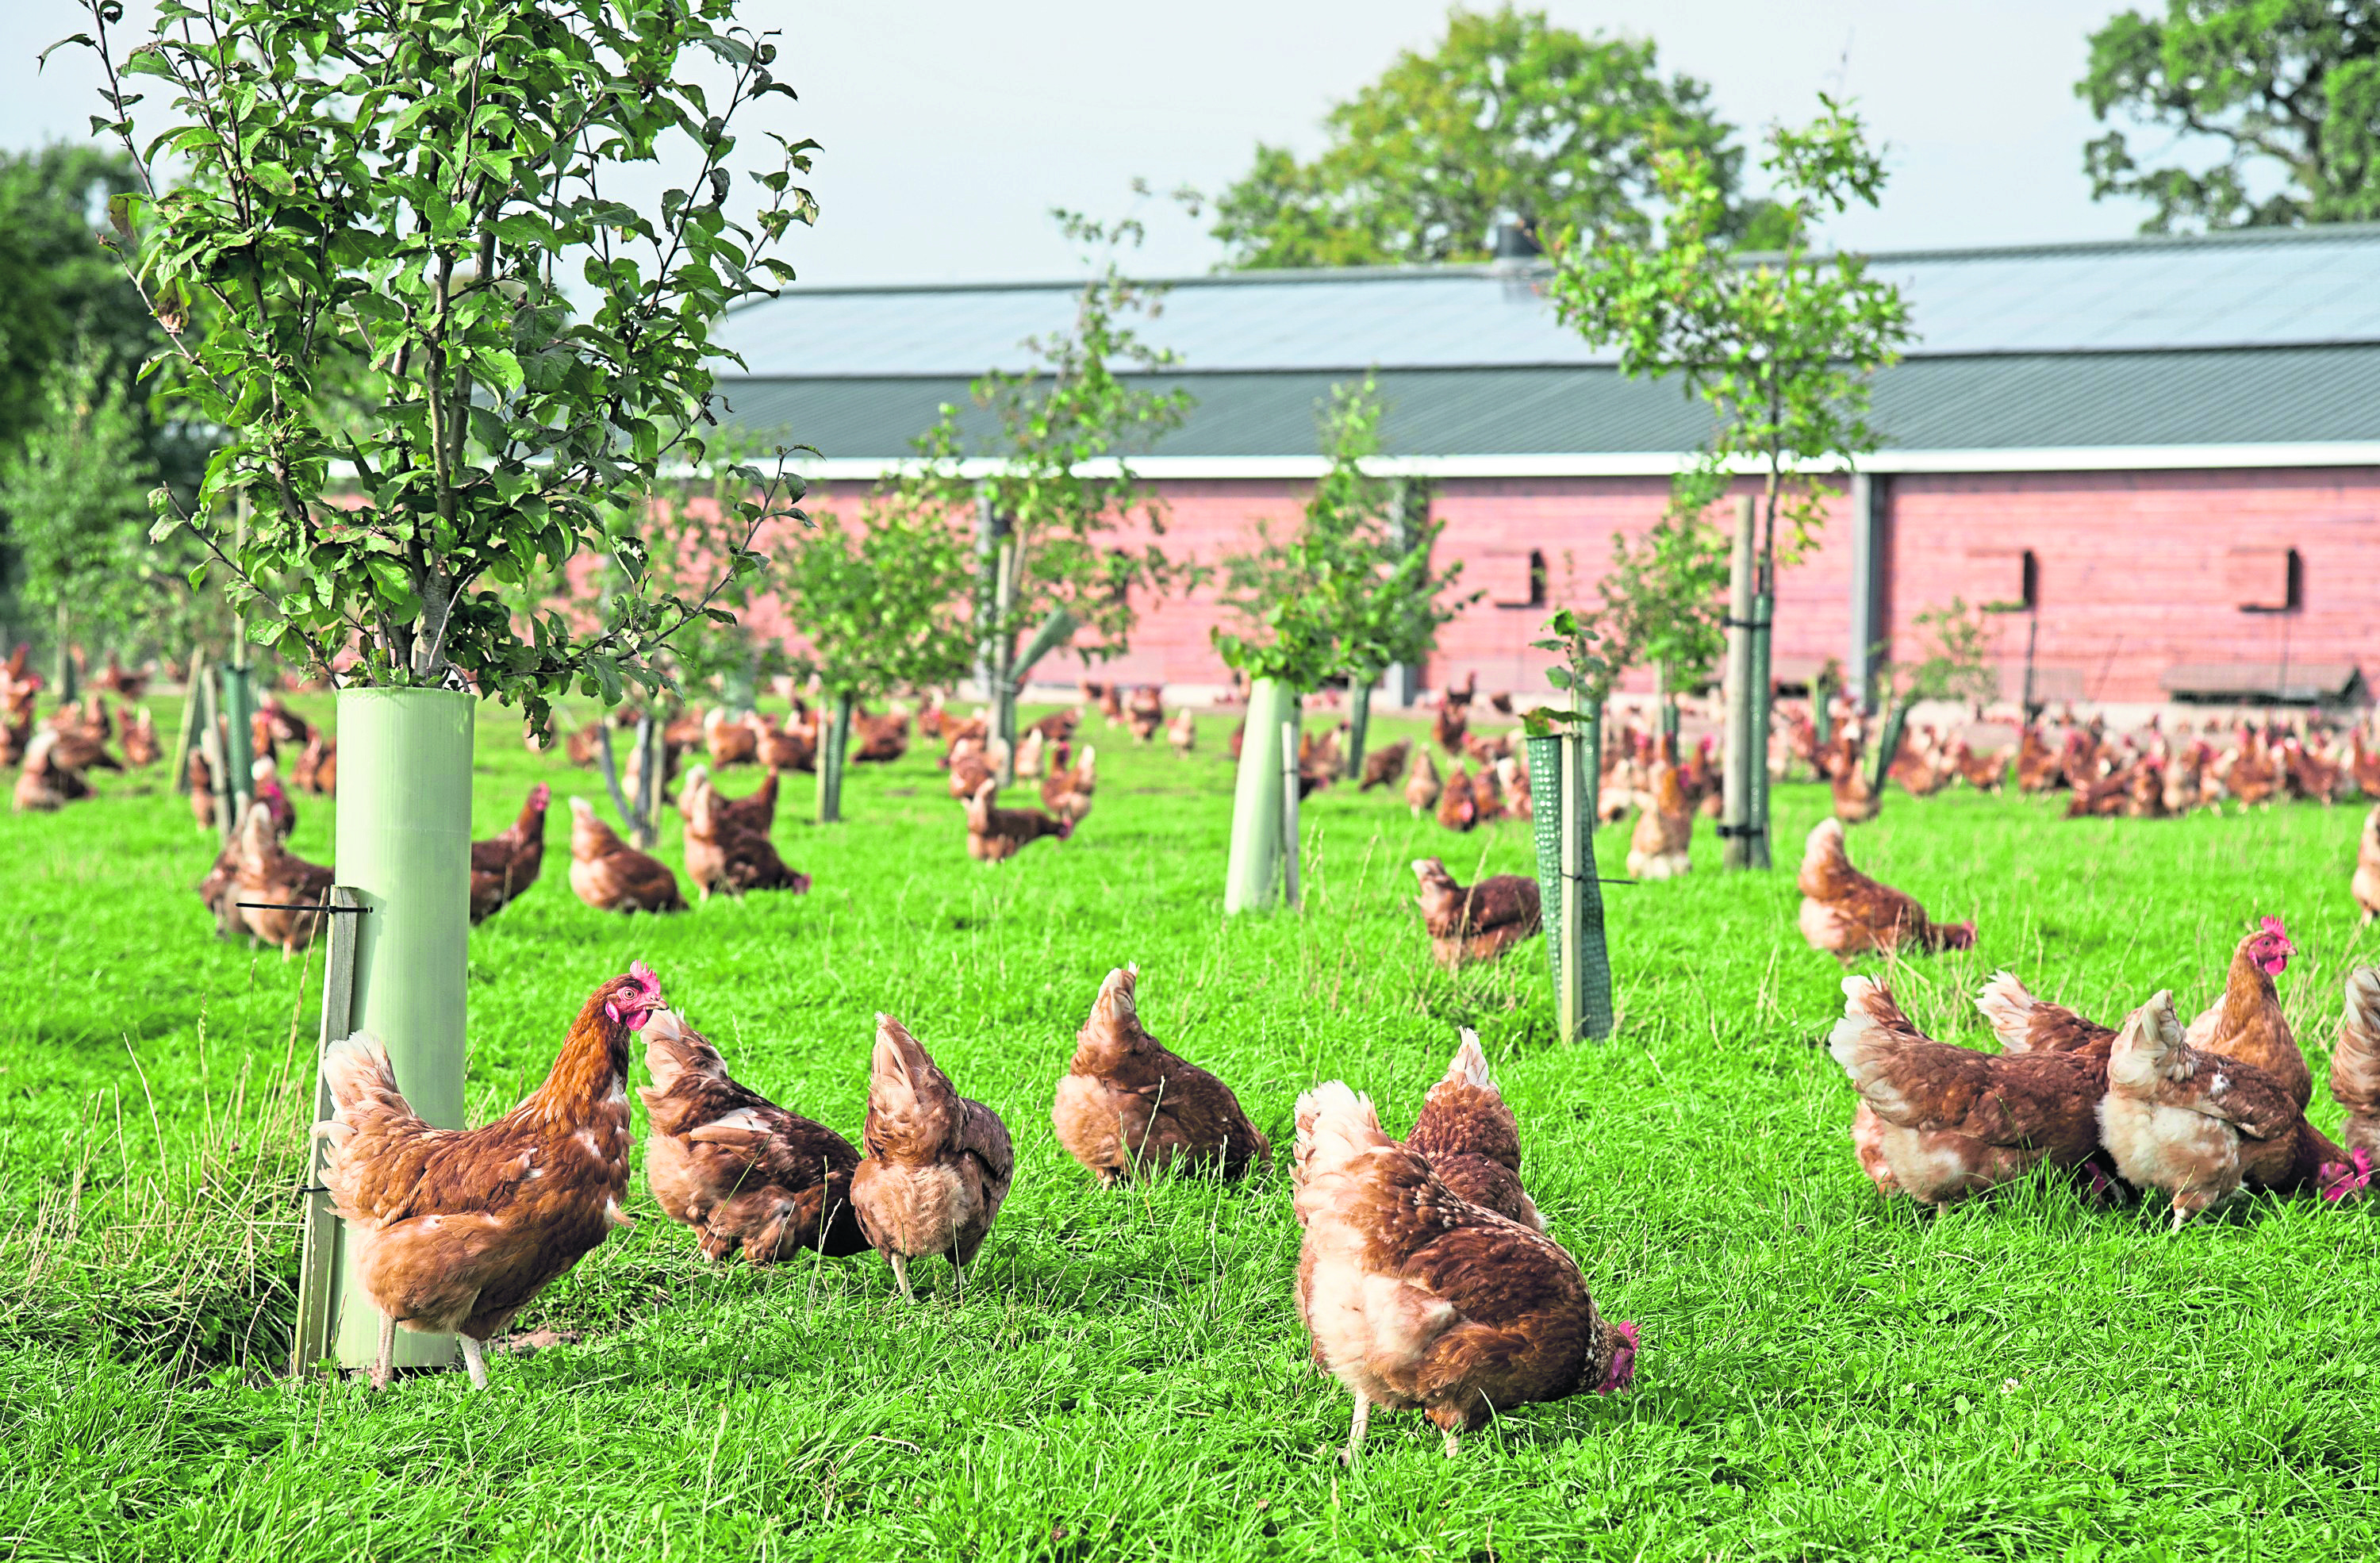 Just as happy hens lay the most eggs, happy staff are the safest and most productive employees in the workplace